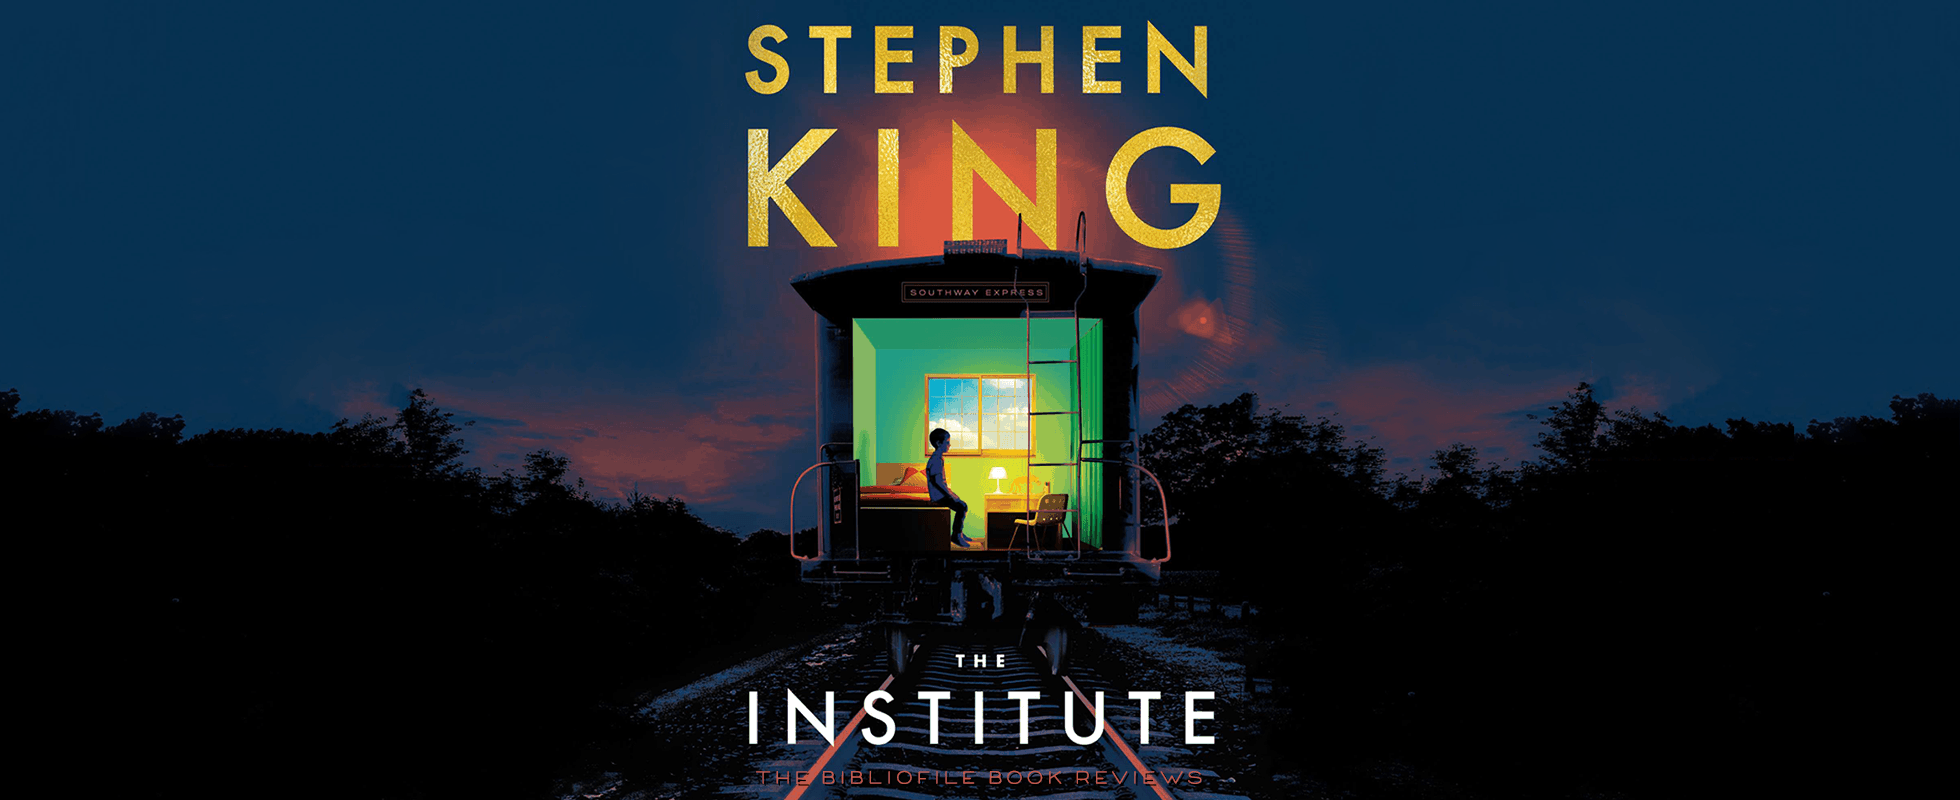 the institute stephen king summary review synopsis book review